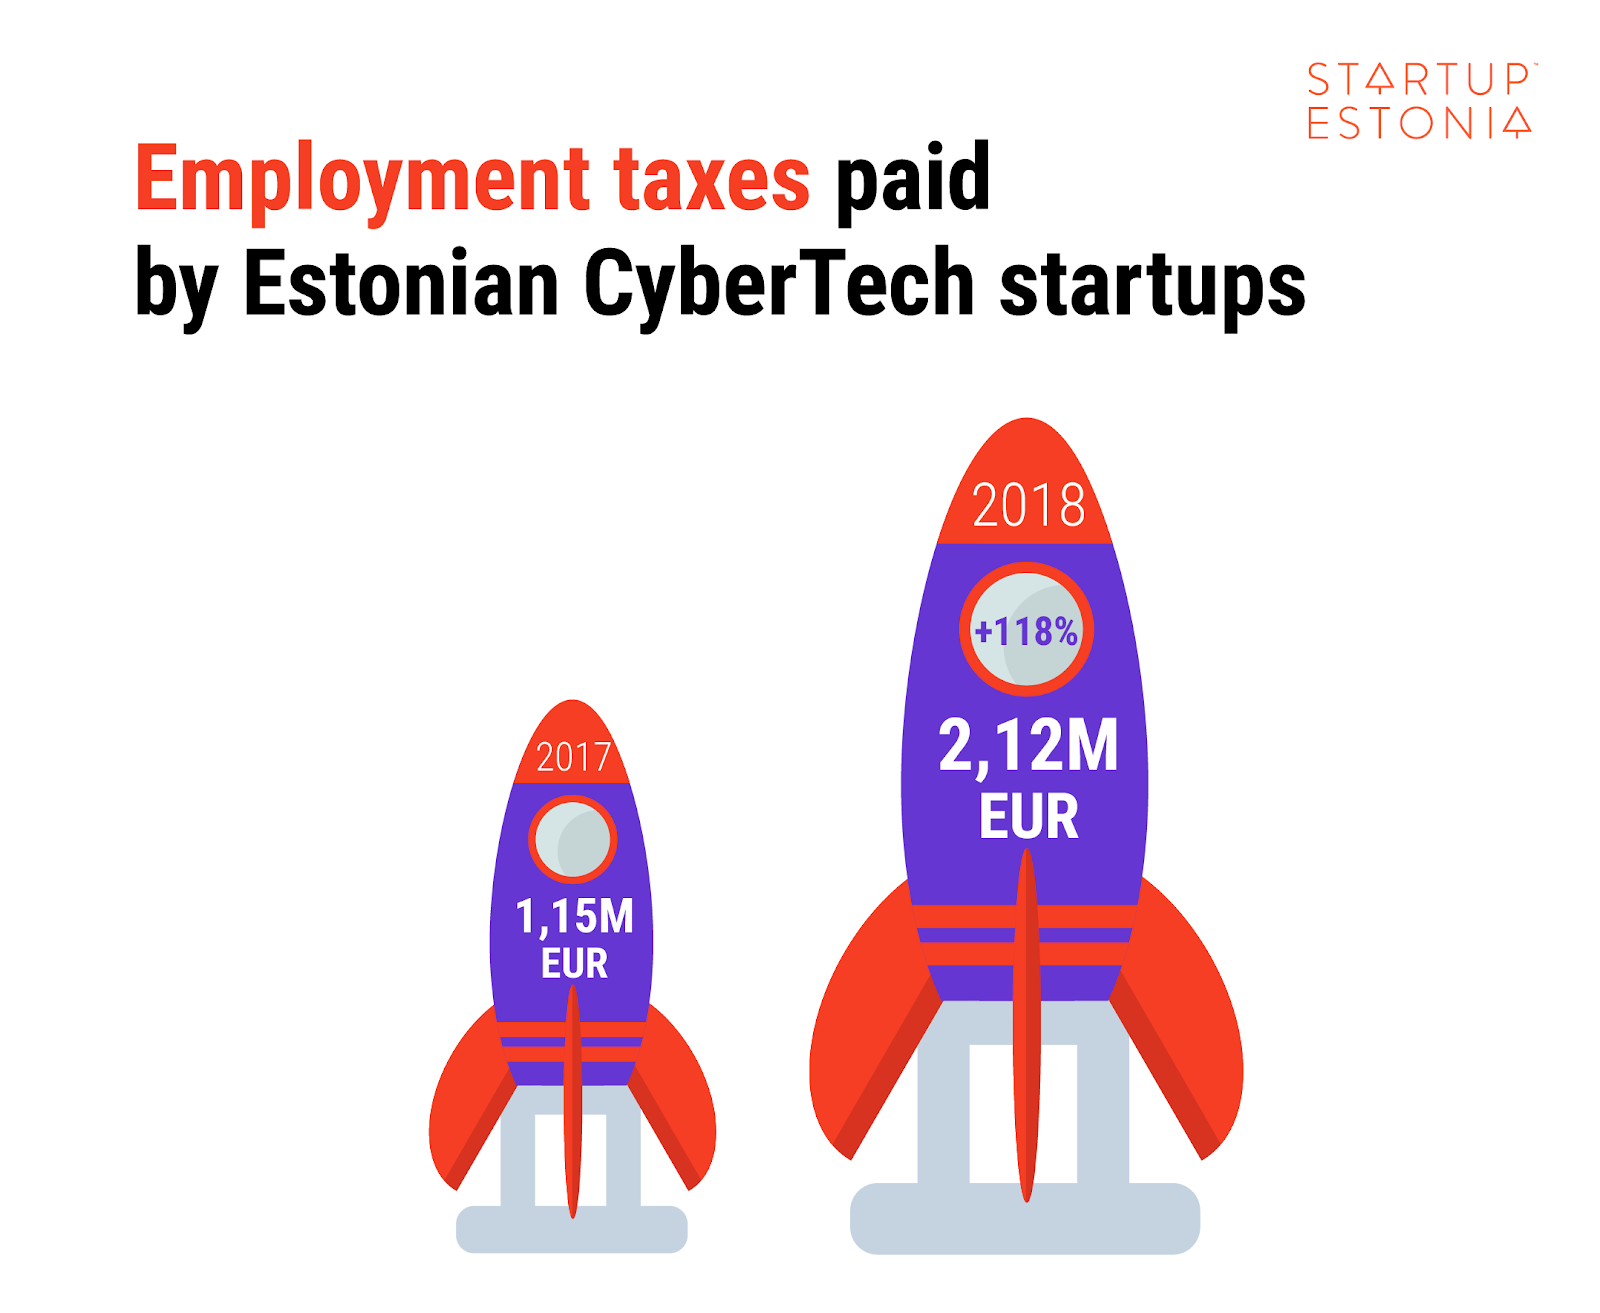 Employment taxes paid by Estonian CyberTech startups